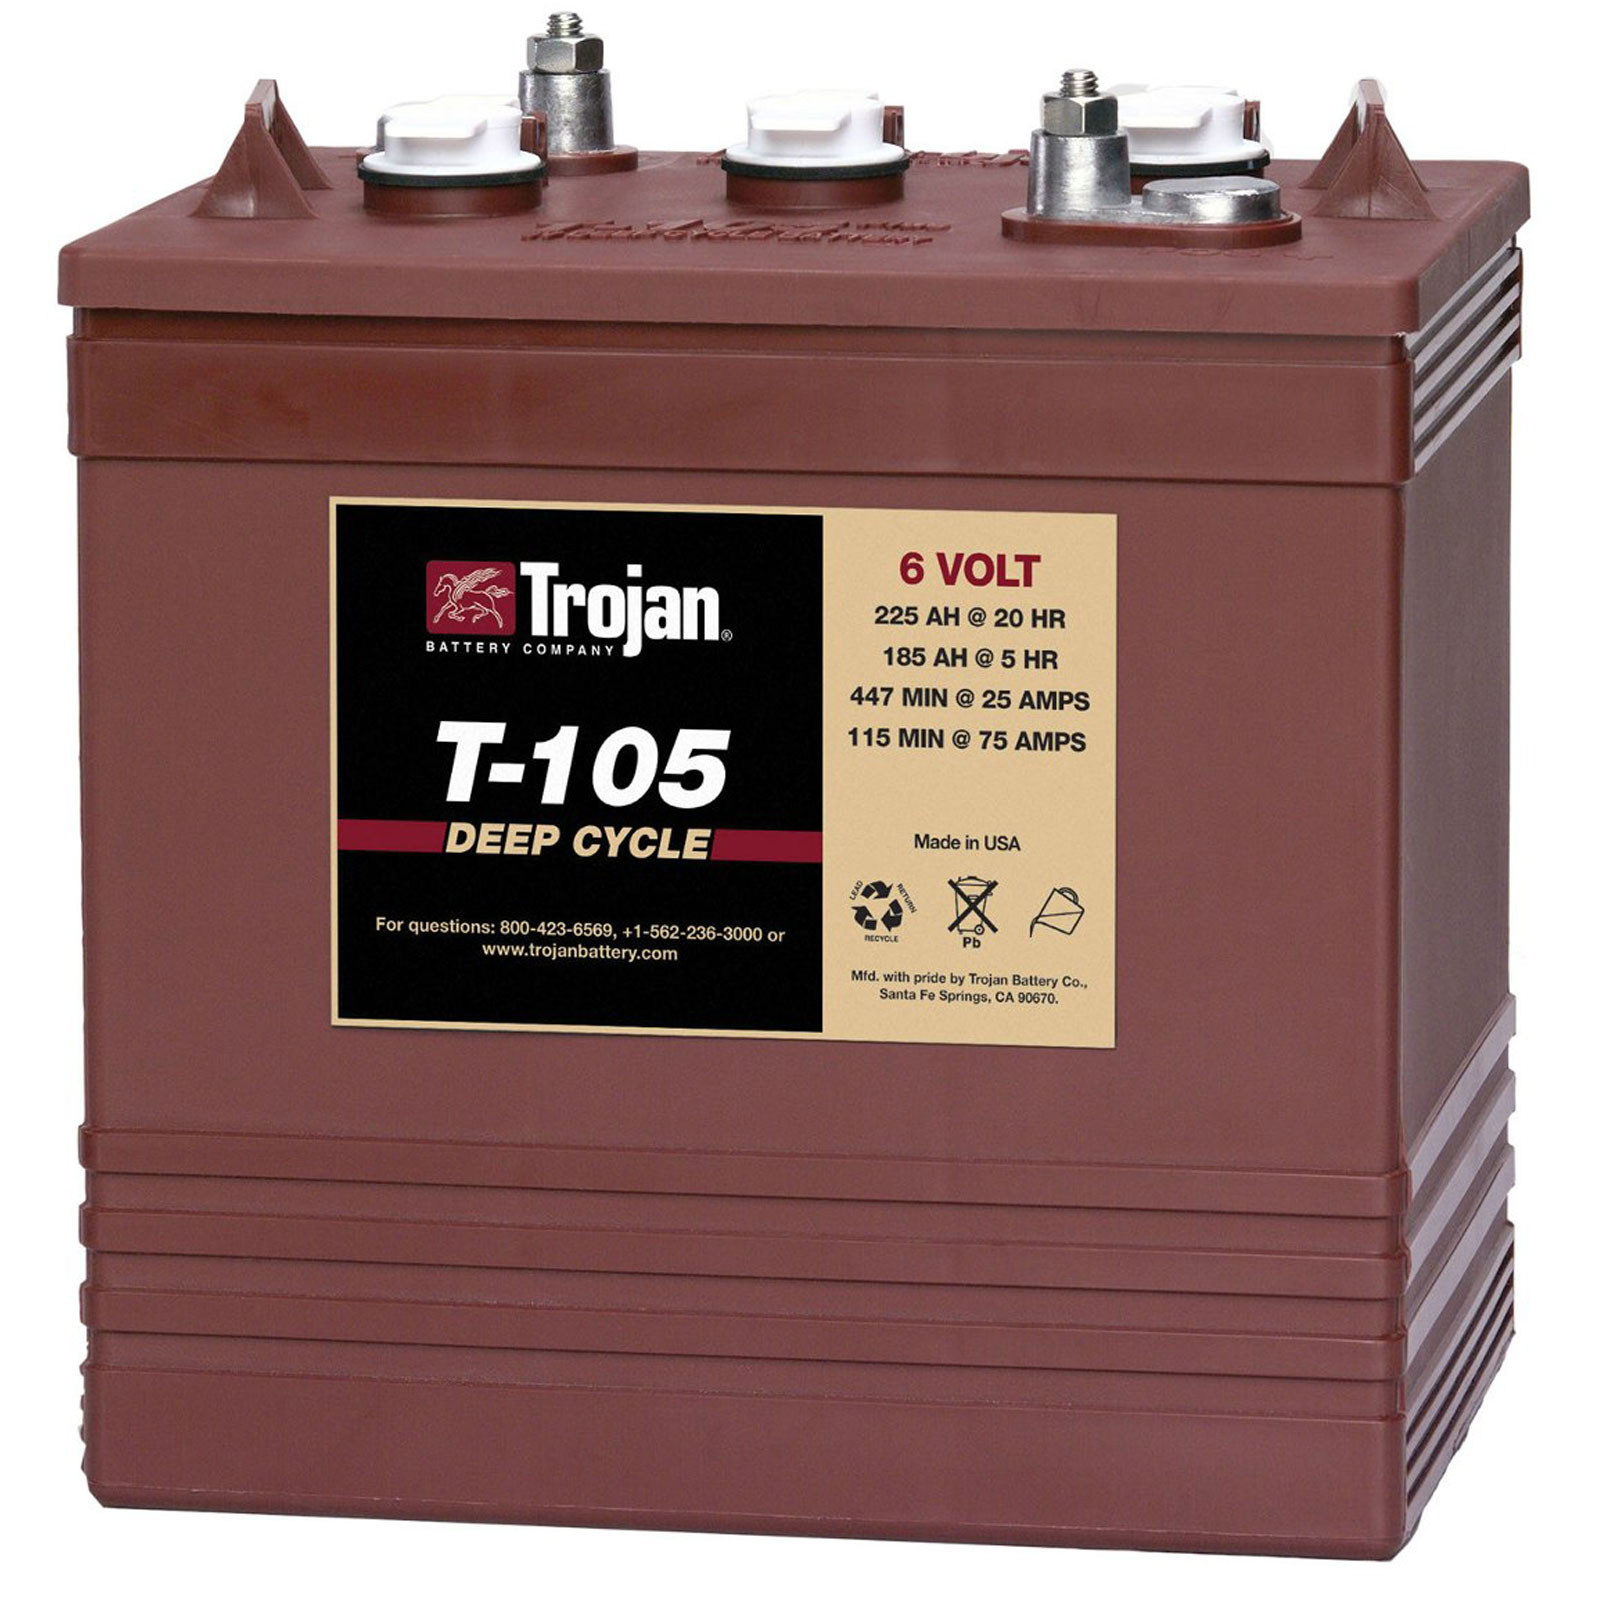 Trojan T 105 Gc2 6v 225ah Deep Cycle Flooded Lead Acid Battery